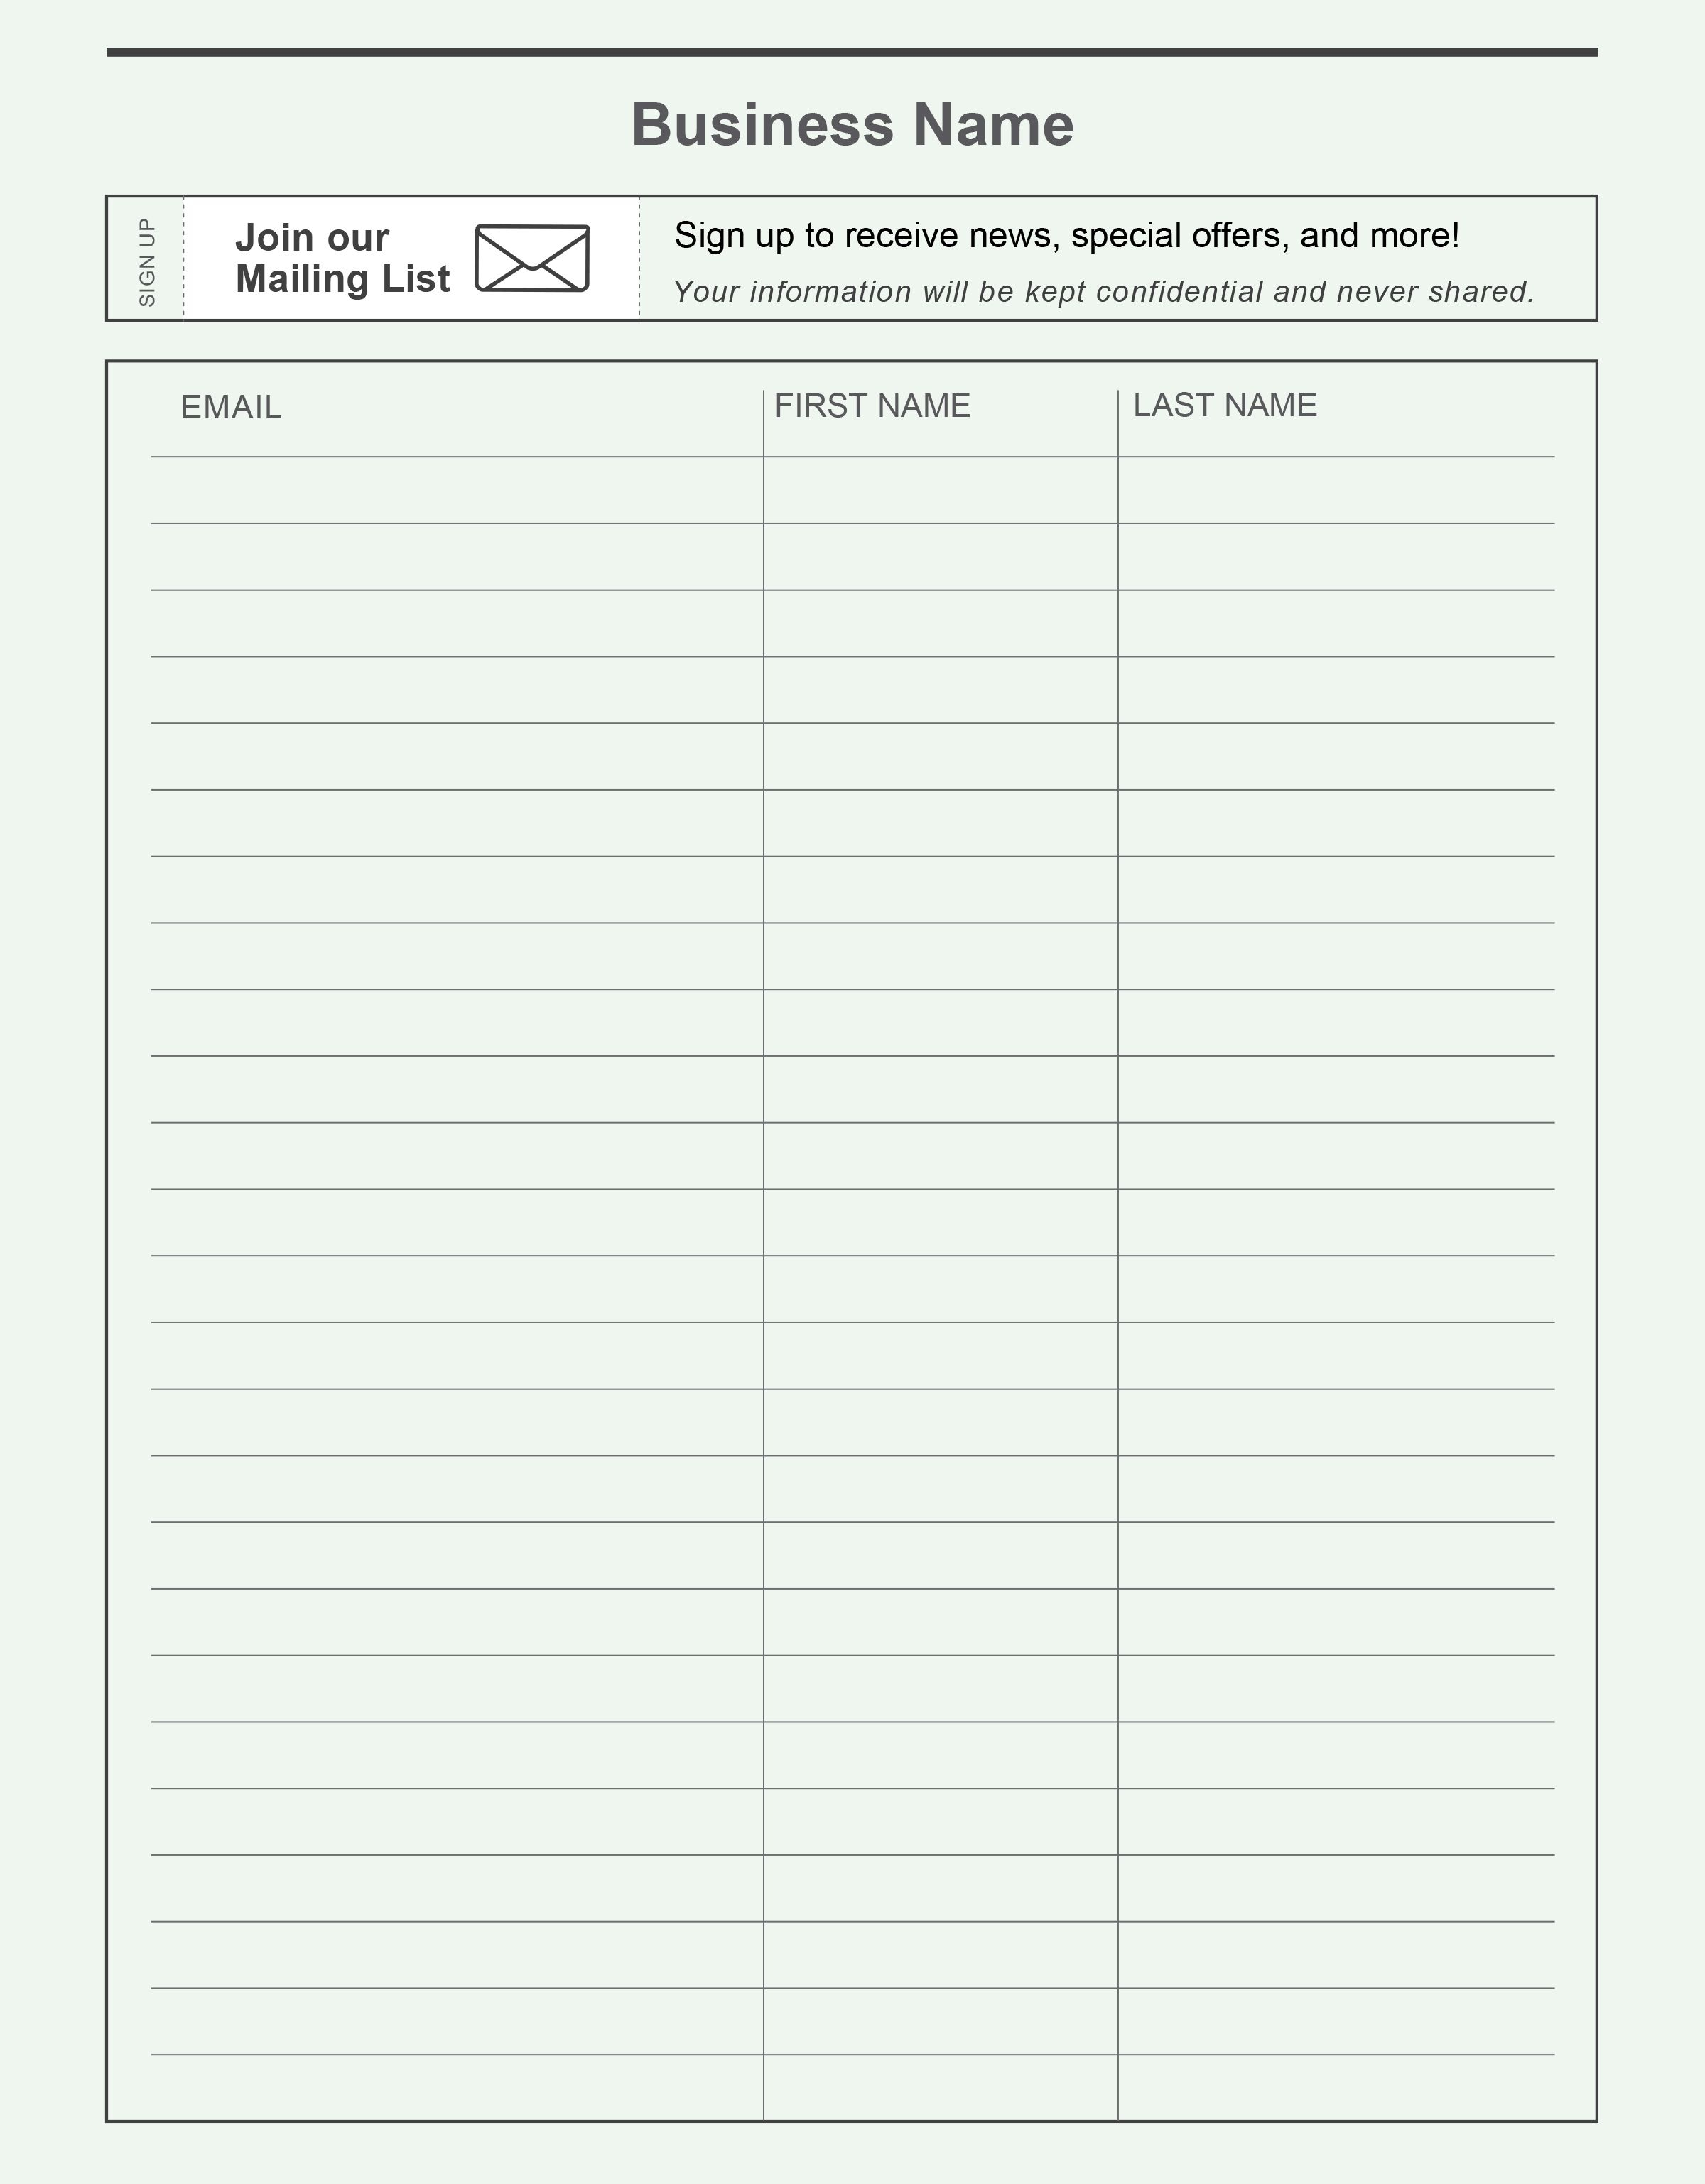 Pinconstant Contact On Grow Your Email List | Free Stuffmail - Free Printable Sign Up Sheet